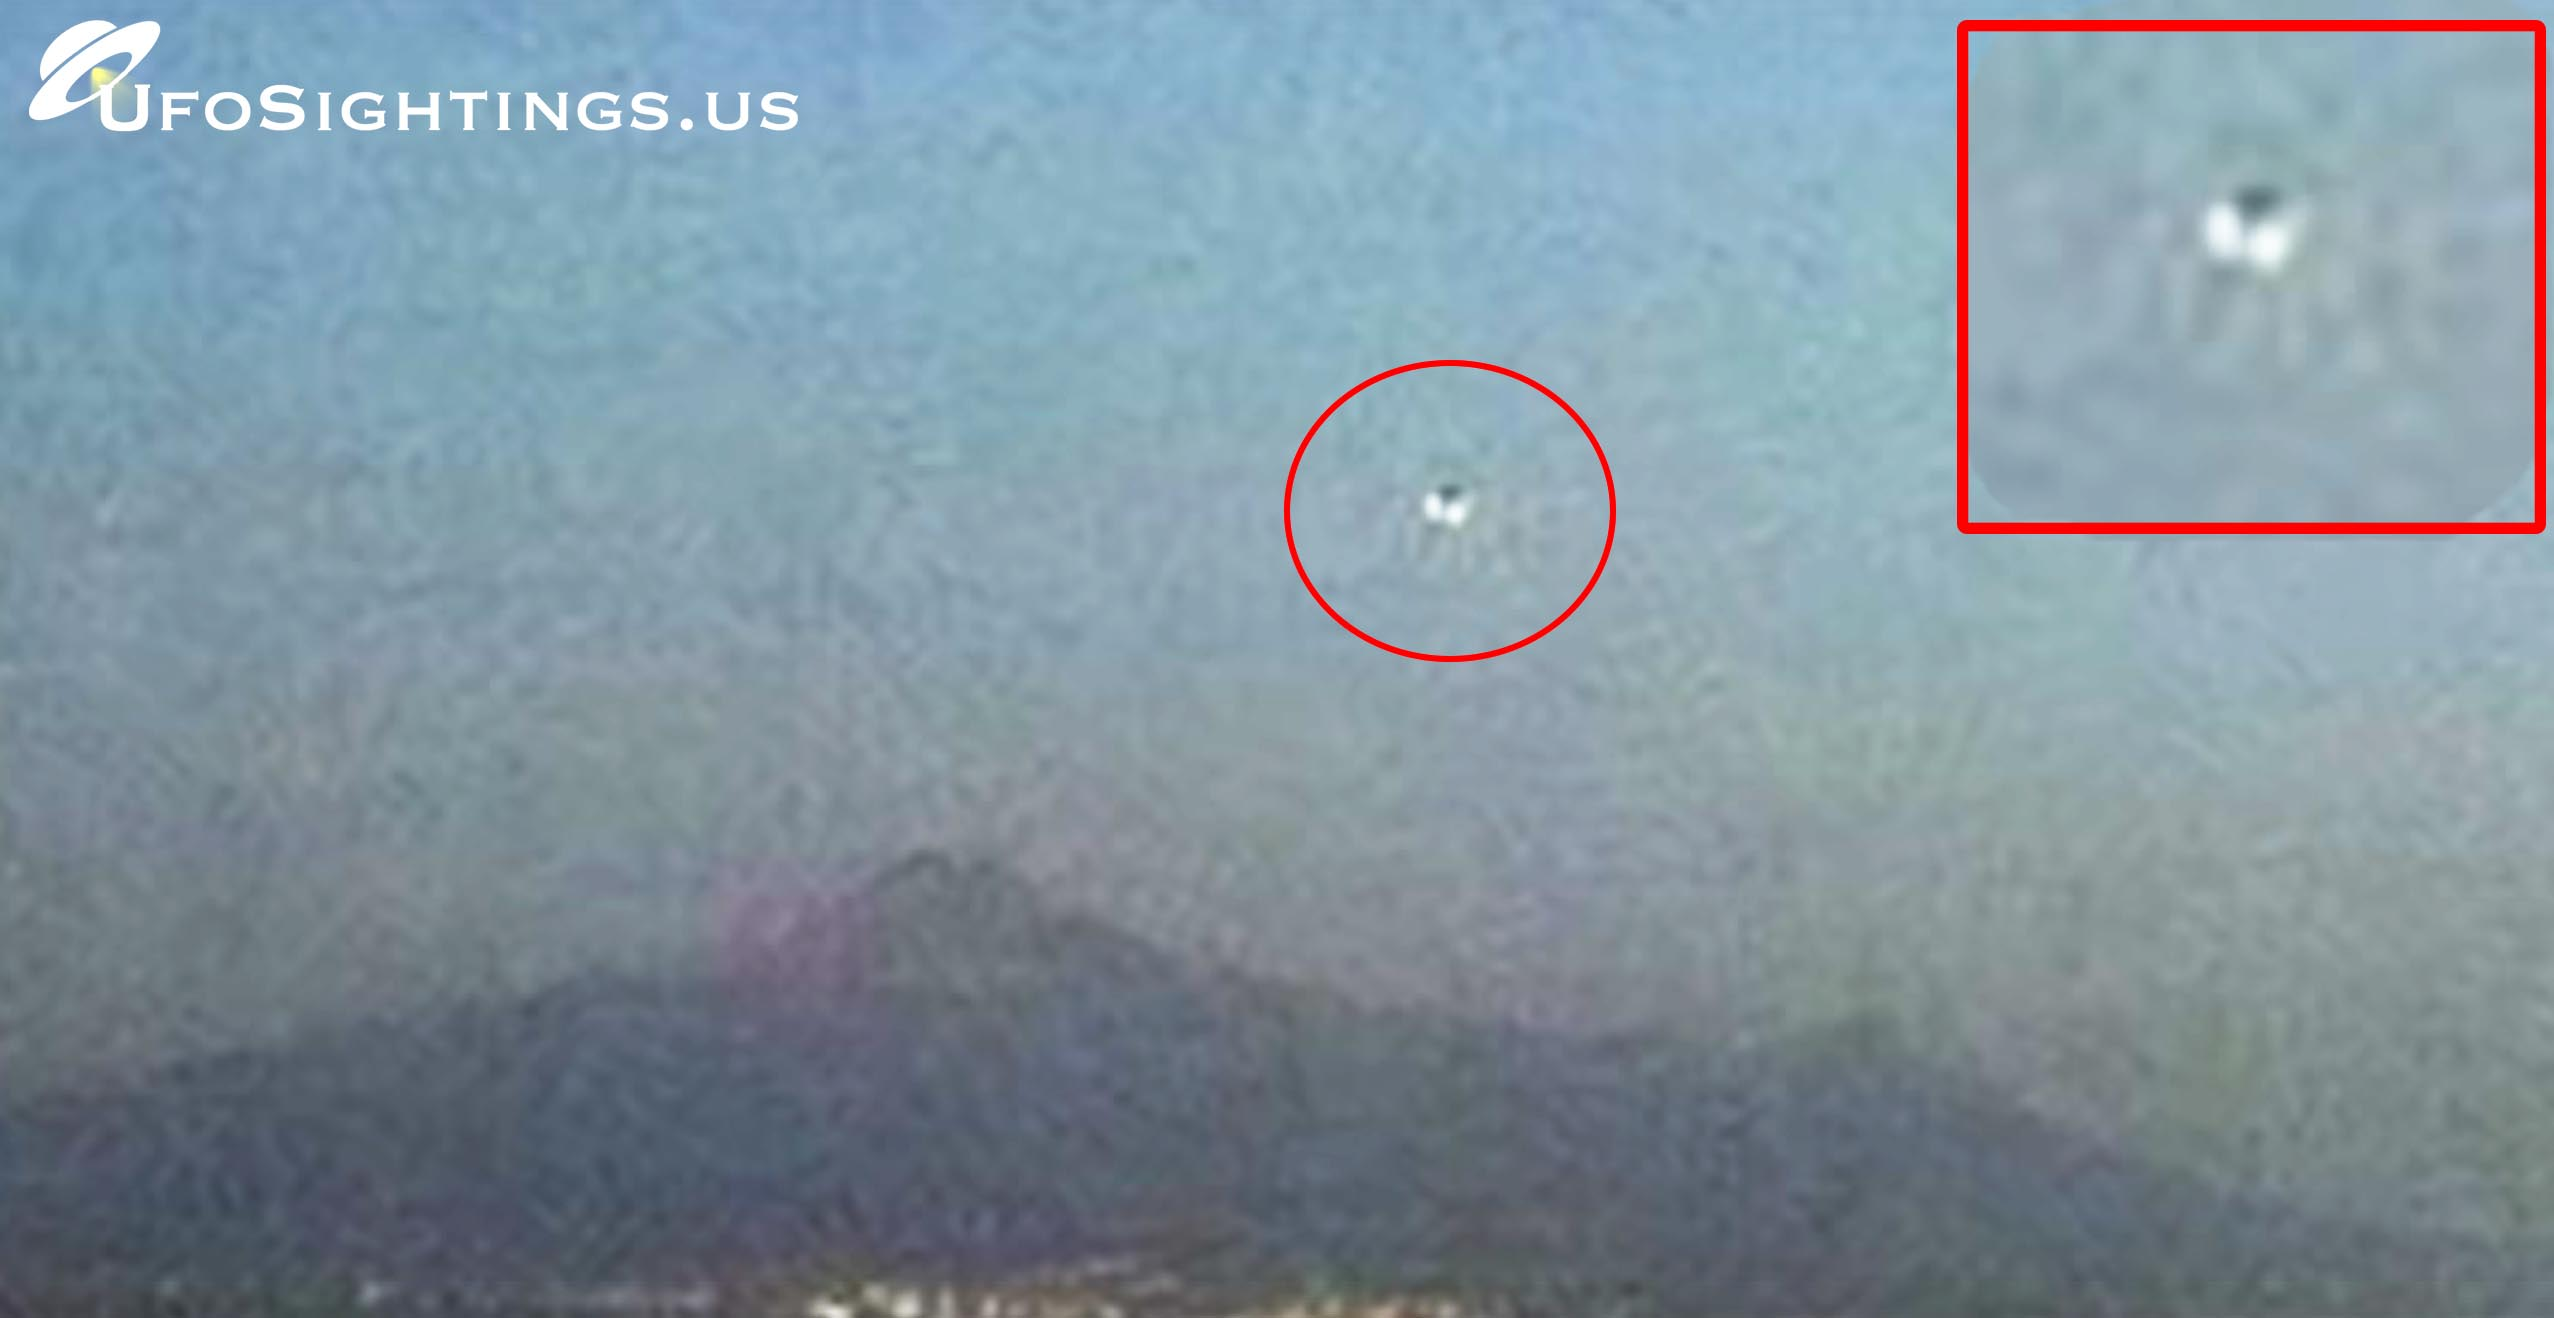 ufo over popocatepetl volcano